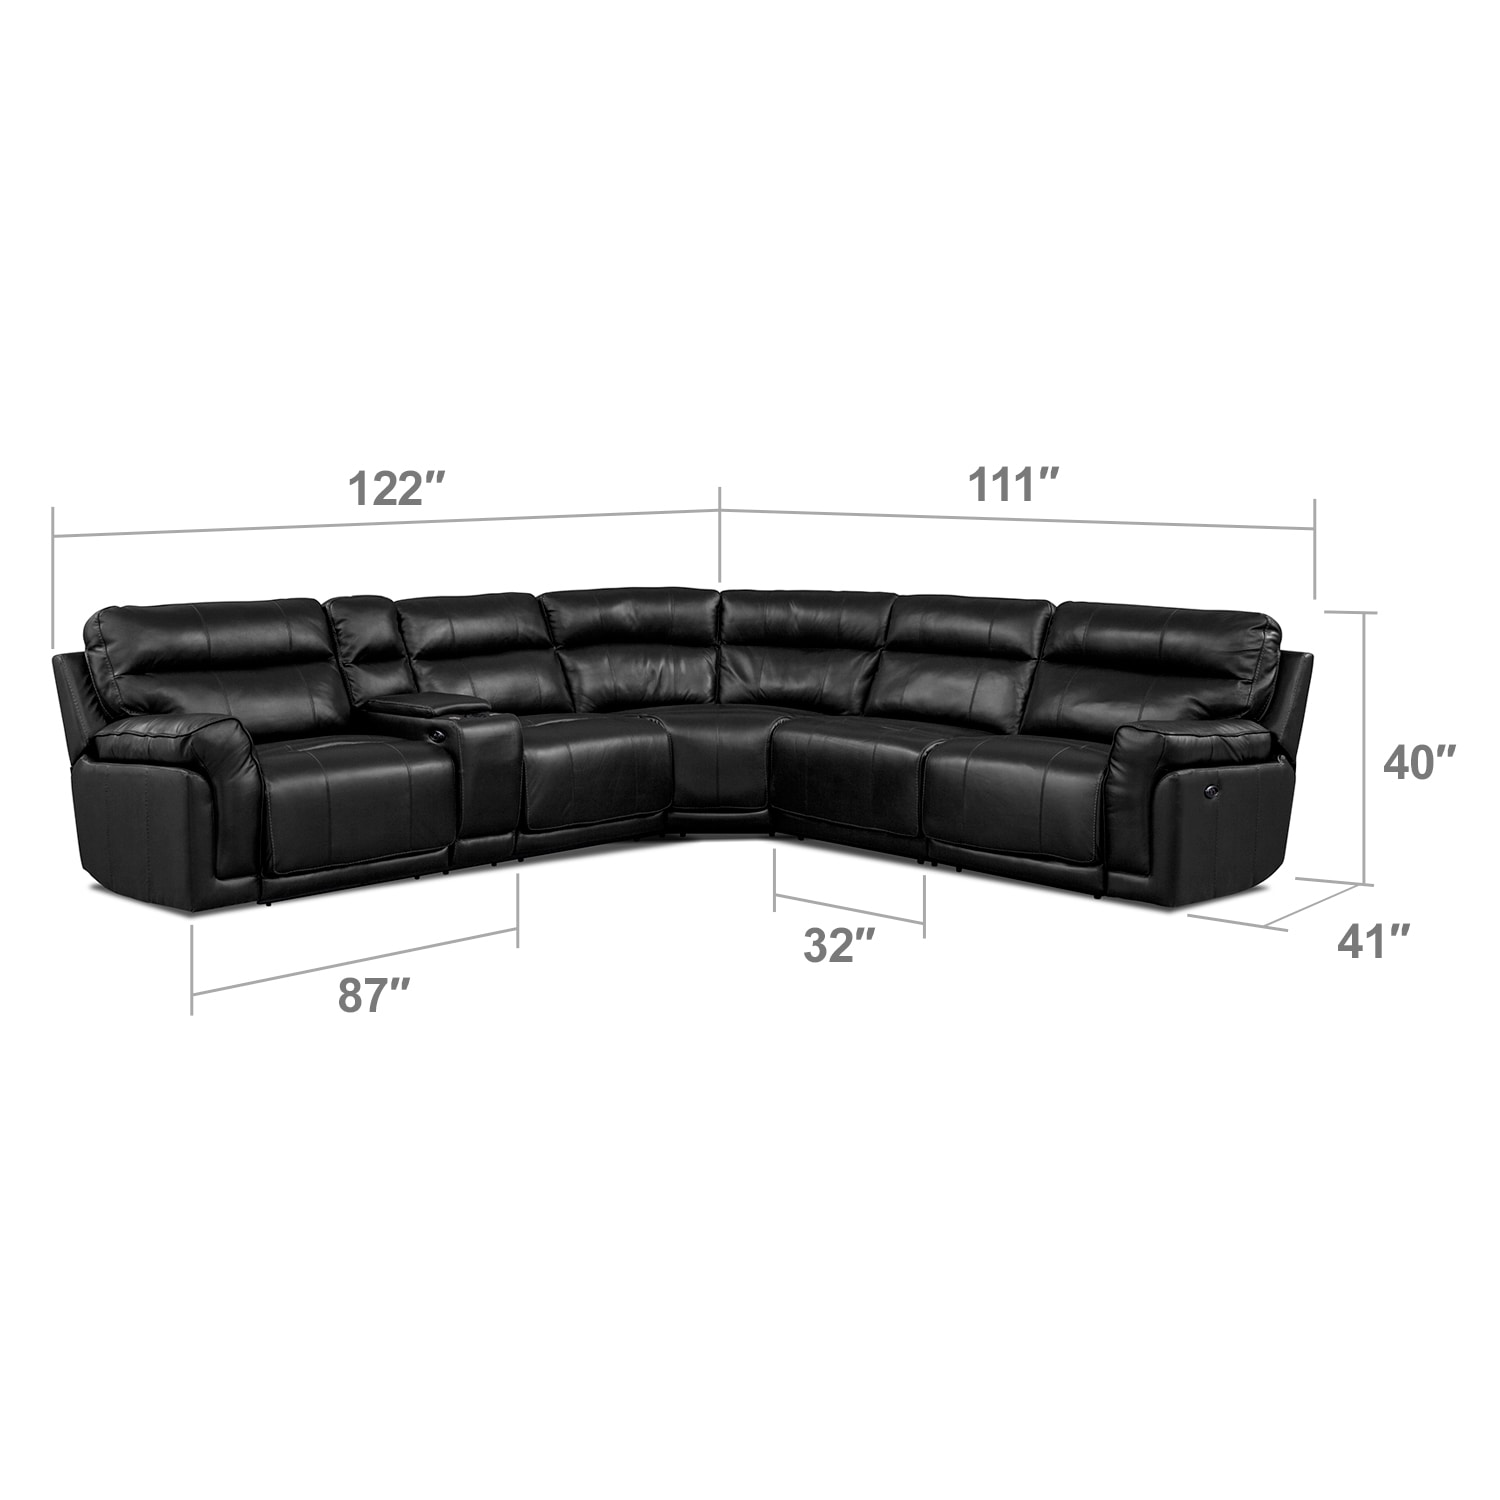 Living Room Furniture - Antonio 4 Pc. Power Reclining Sectional with Music Console